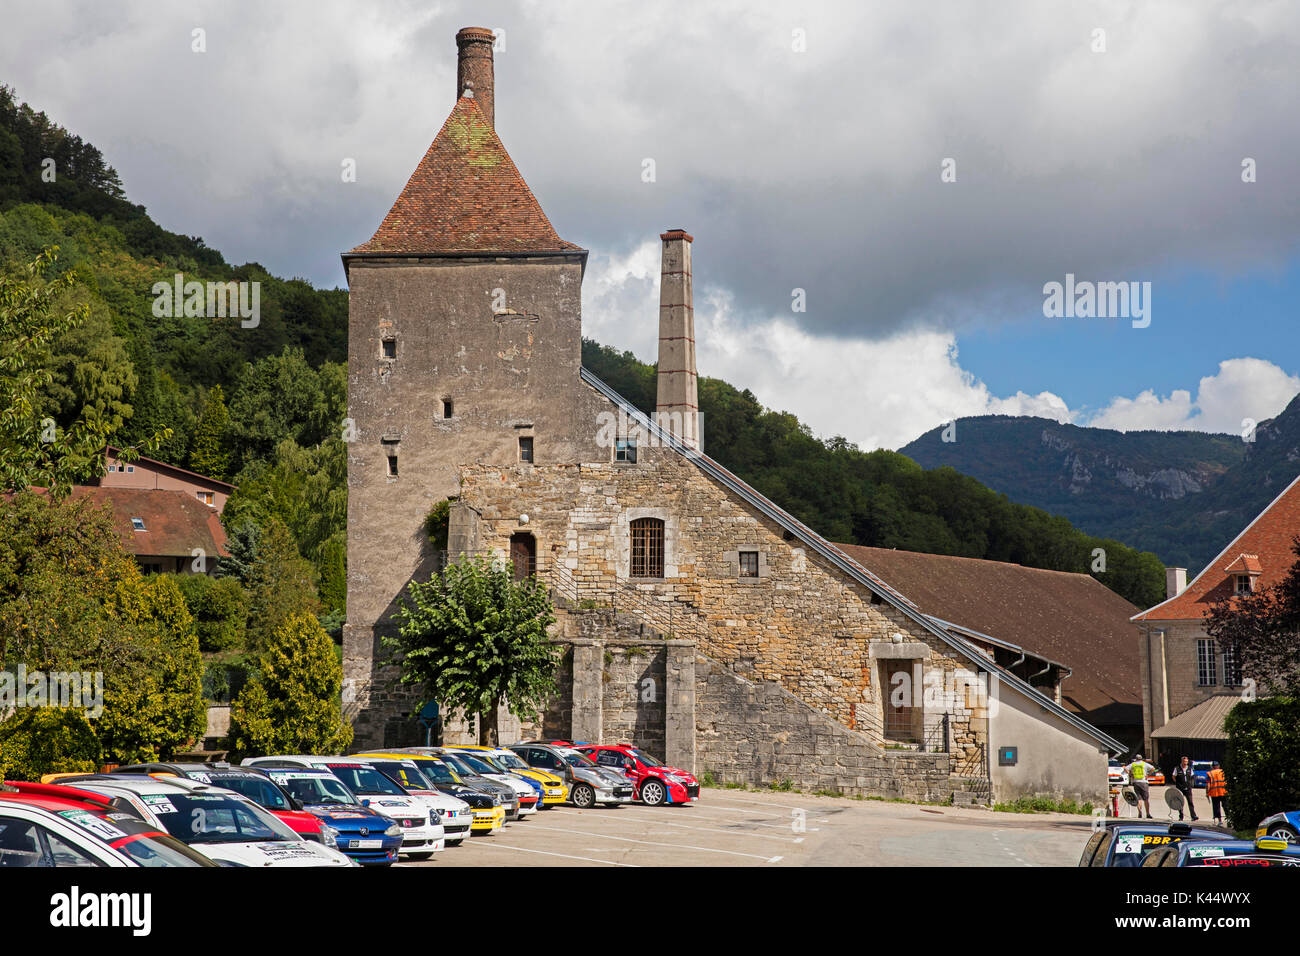 Rally cars of the Rallye du Sel in front of the Grande saline, old salt factory at Salins-les-Bains, Jura, Franche-Comté, Lons-le-Saunier, France - Stock Image